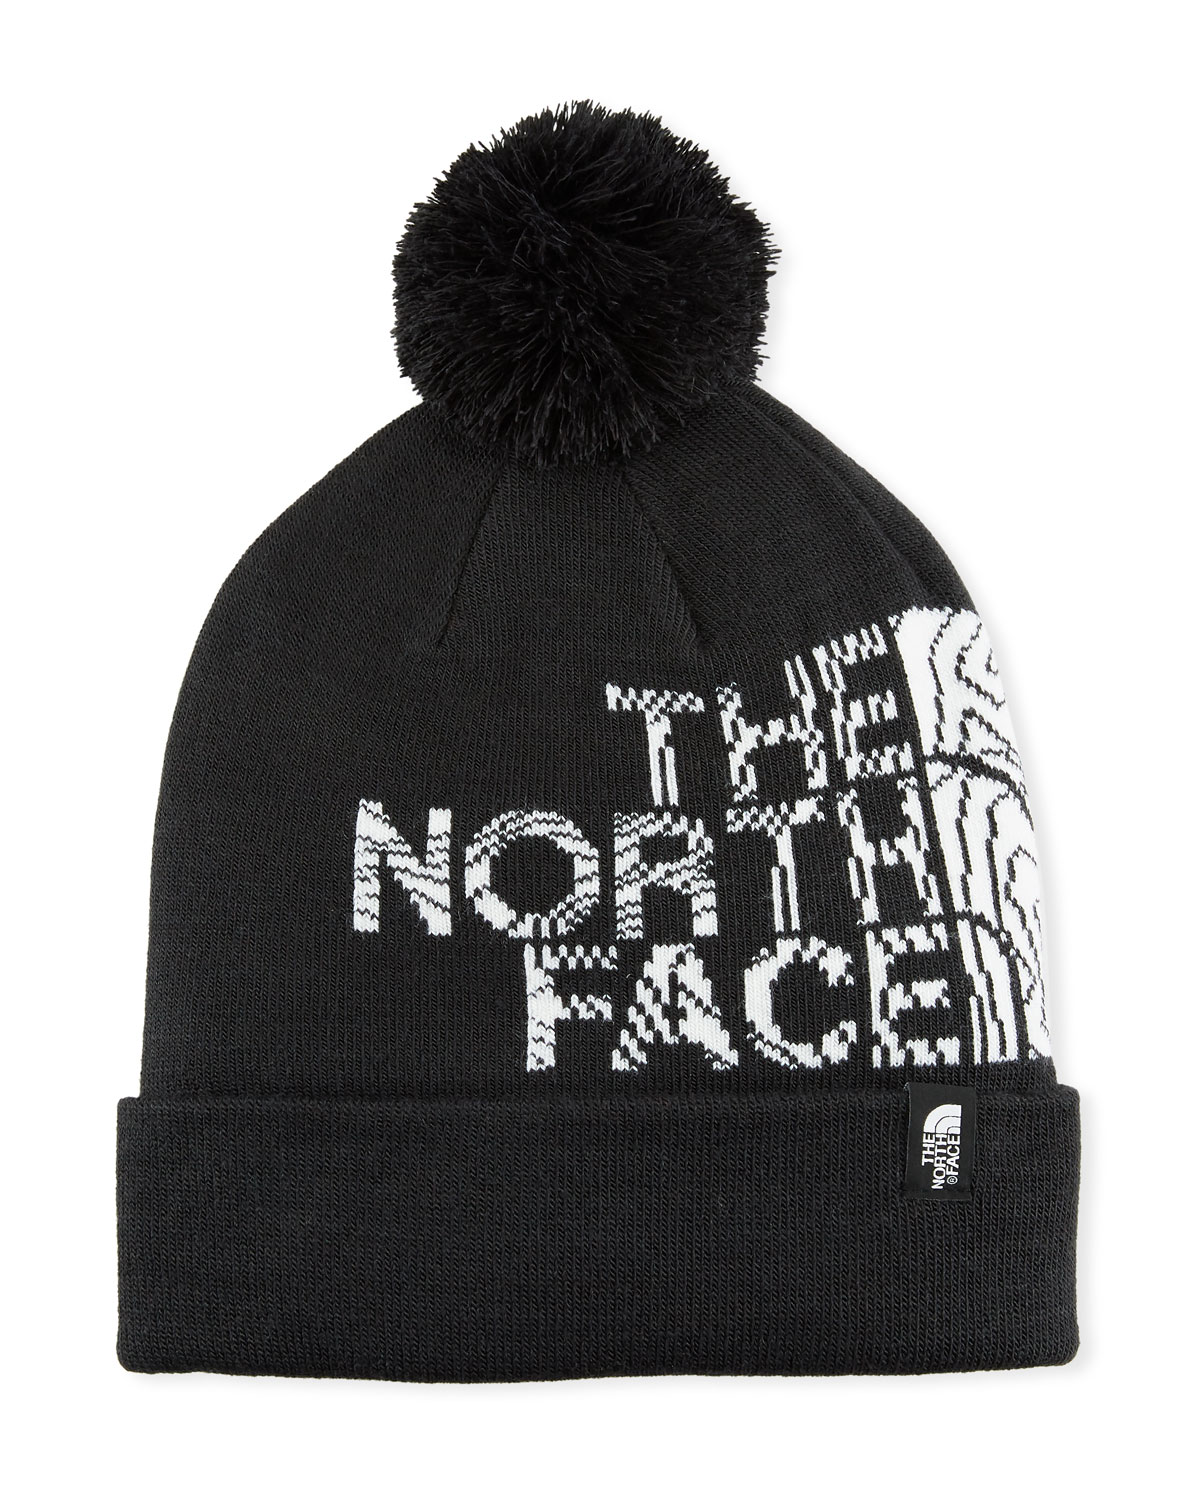 The North Face Men s Logo Ski Toque Beanie Hat with Pompom ... 519879915511